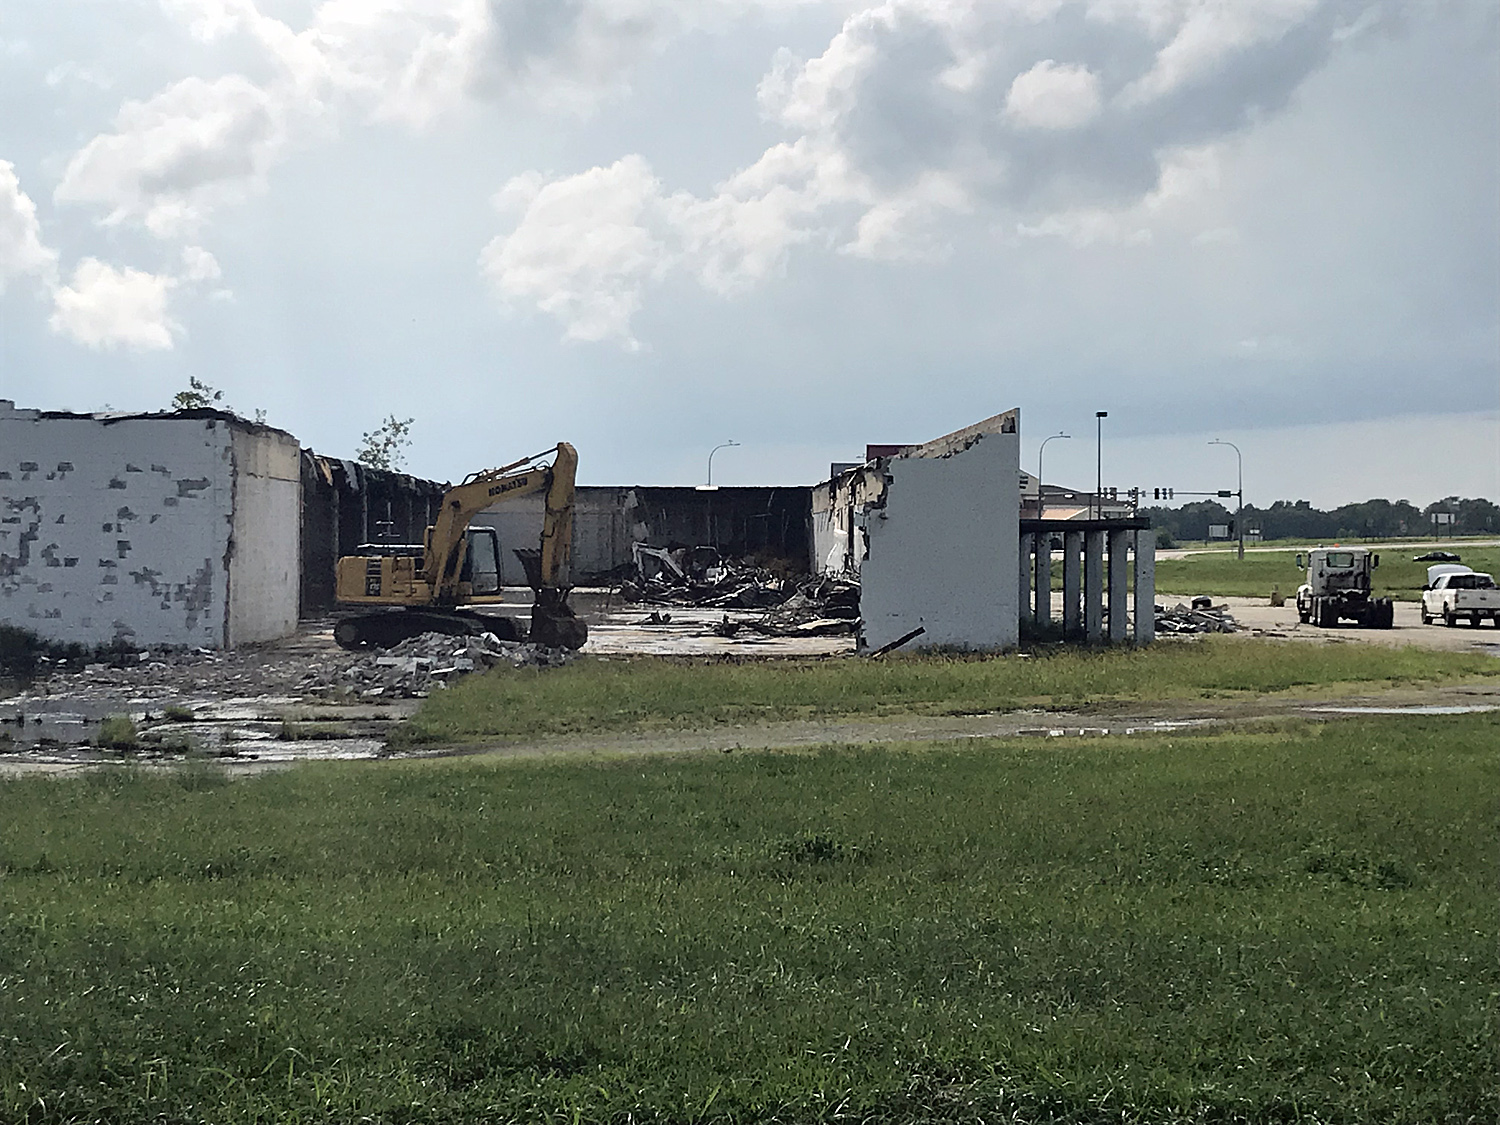 Demolition ongoing on former Vandalia Wal-Mart building